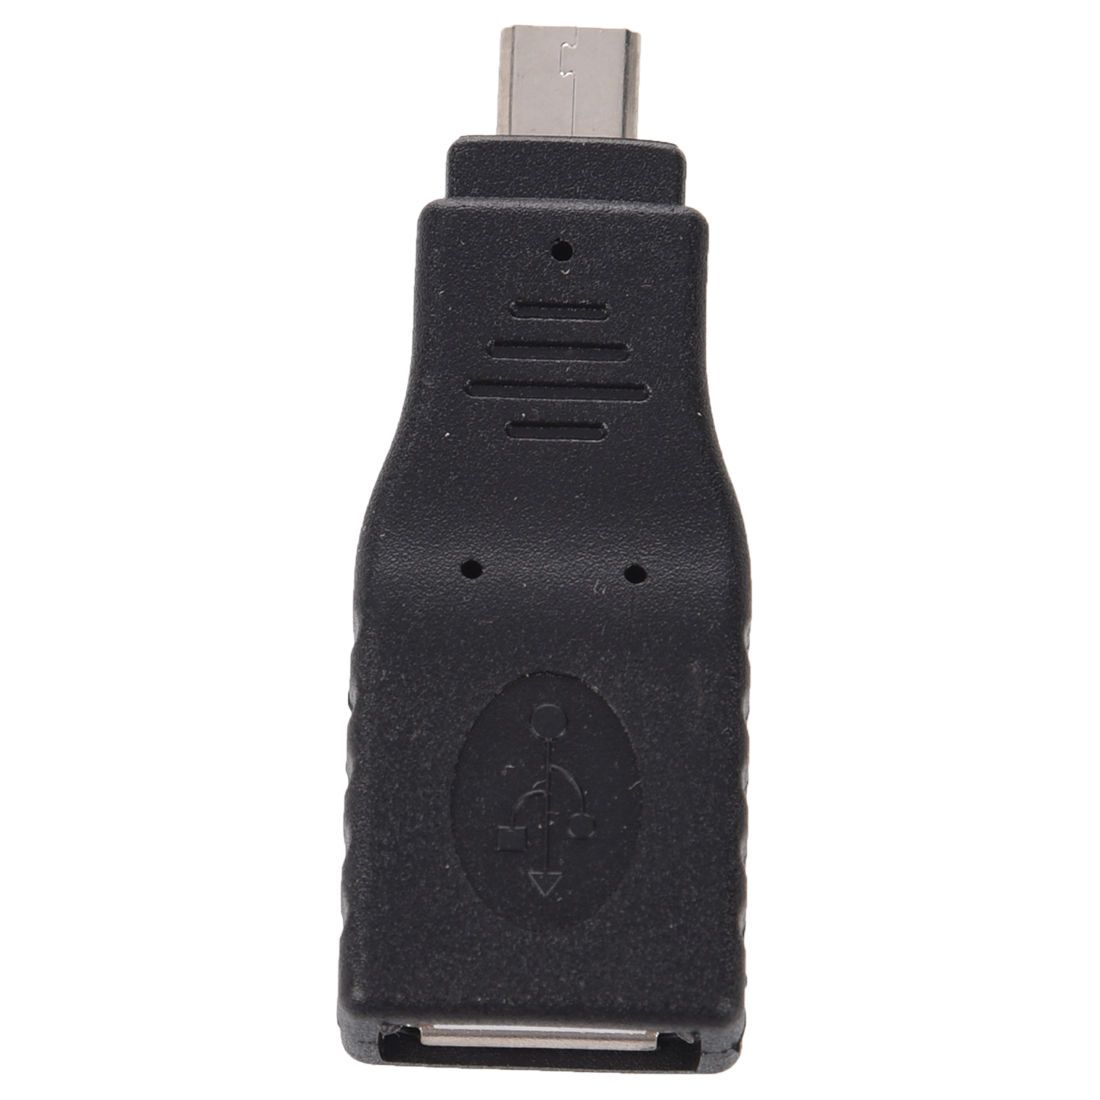 Adapter Otg (On - The - Go) Usb - A Concave To Usb Micro - B Convex ...